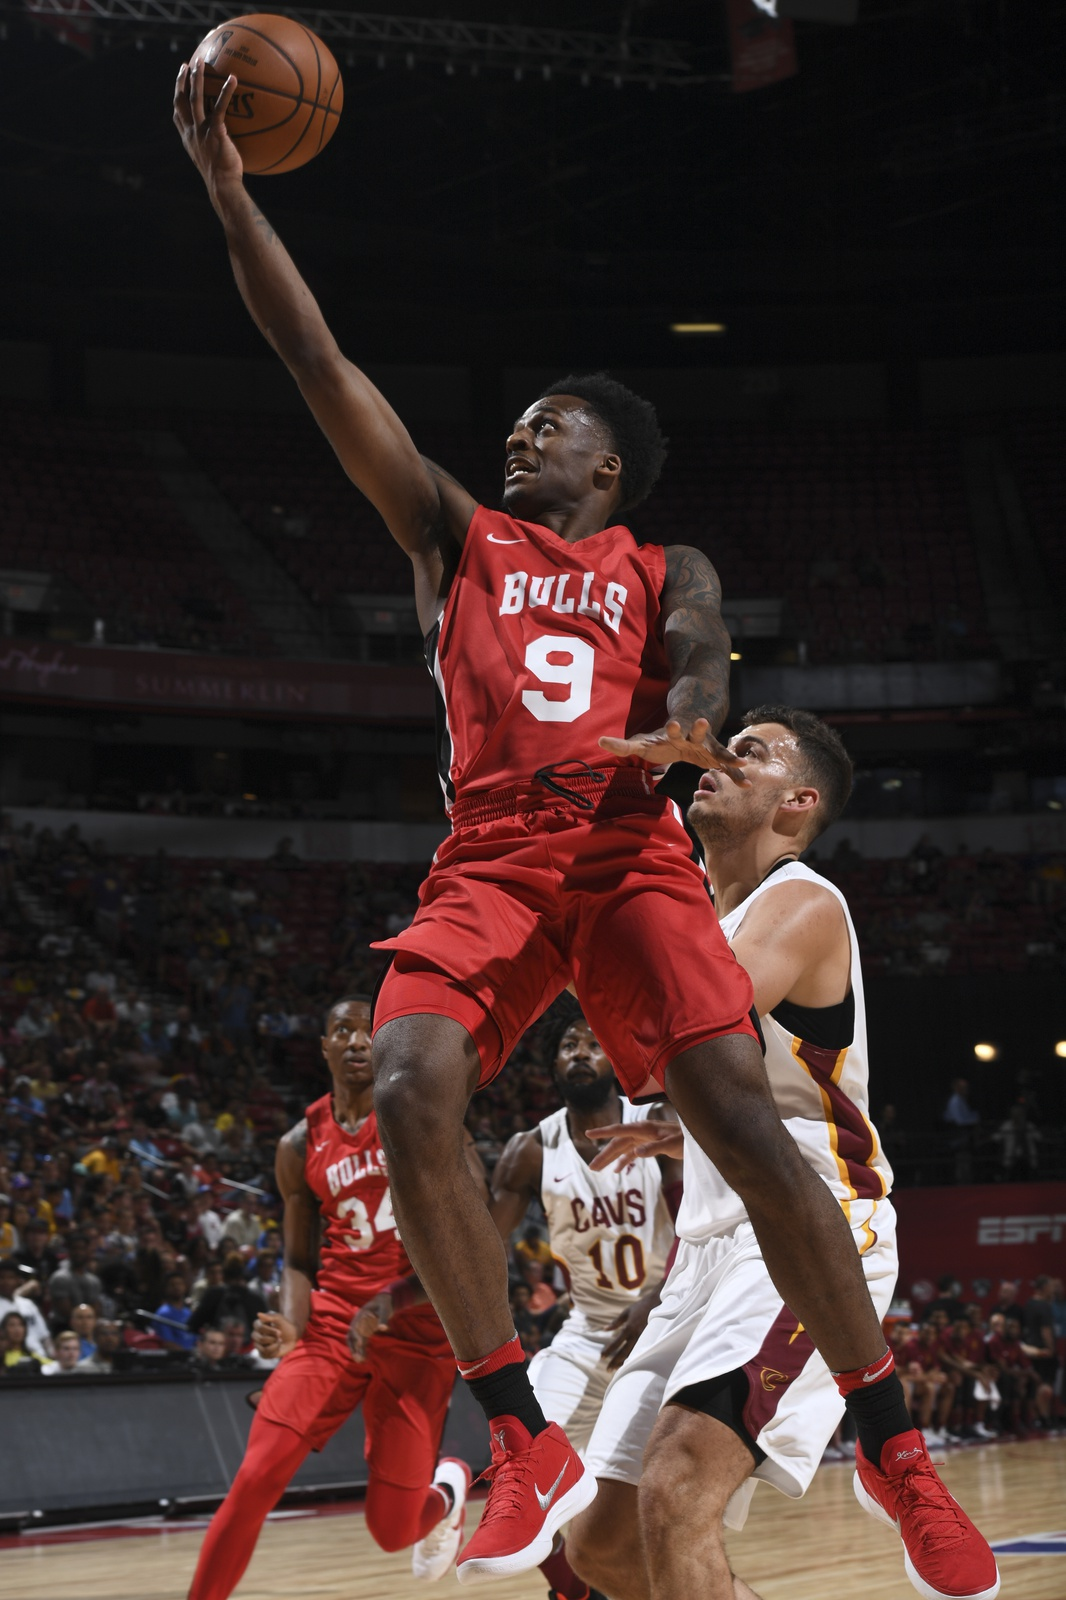 Blakney lays a basket against the Cleveland Cavaliers during the 2018 Las Vegas Summer League